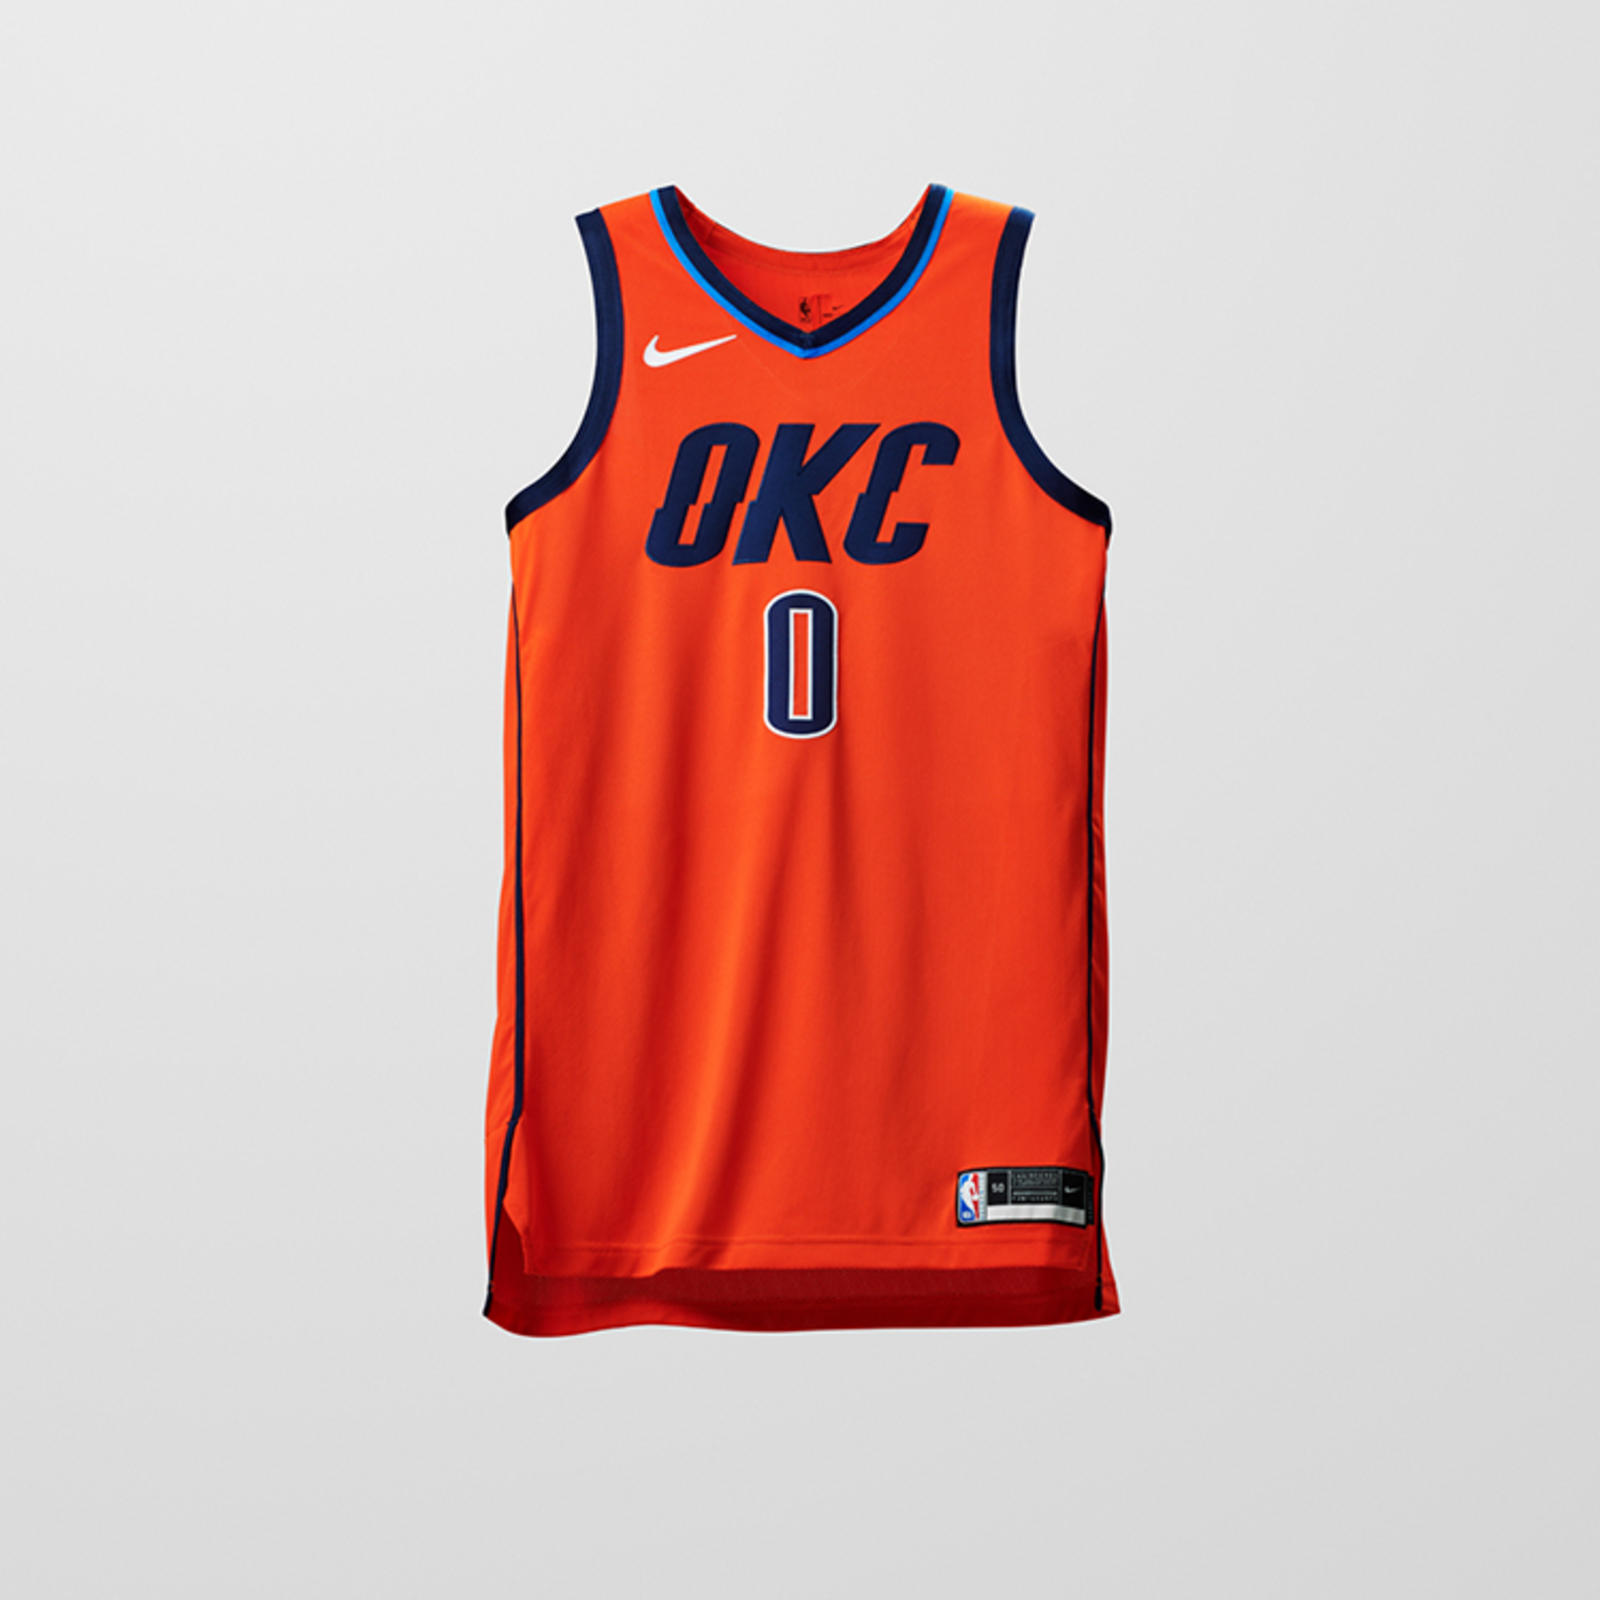 reputable site 6407a 6e16a Introducing the Nike NBA Earned Edition Uniforms ...